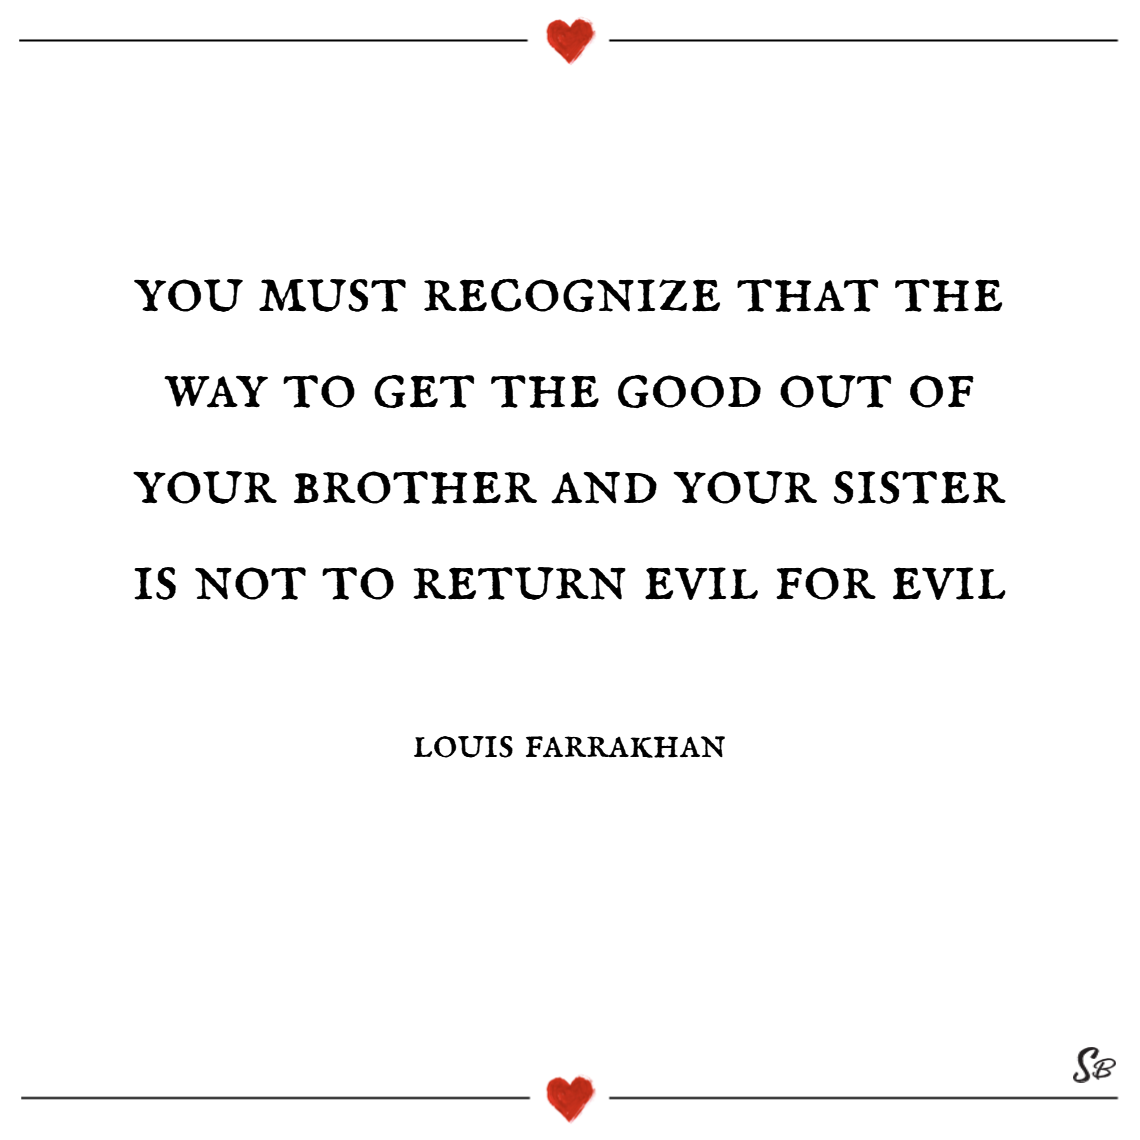 You must recognize that the way to get the good out of your brother and your sister is not to return evil for evil. – louis farrakhan